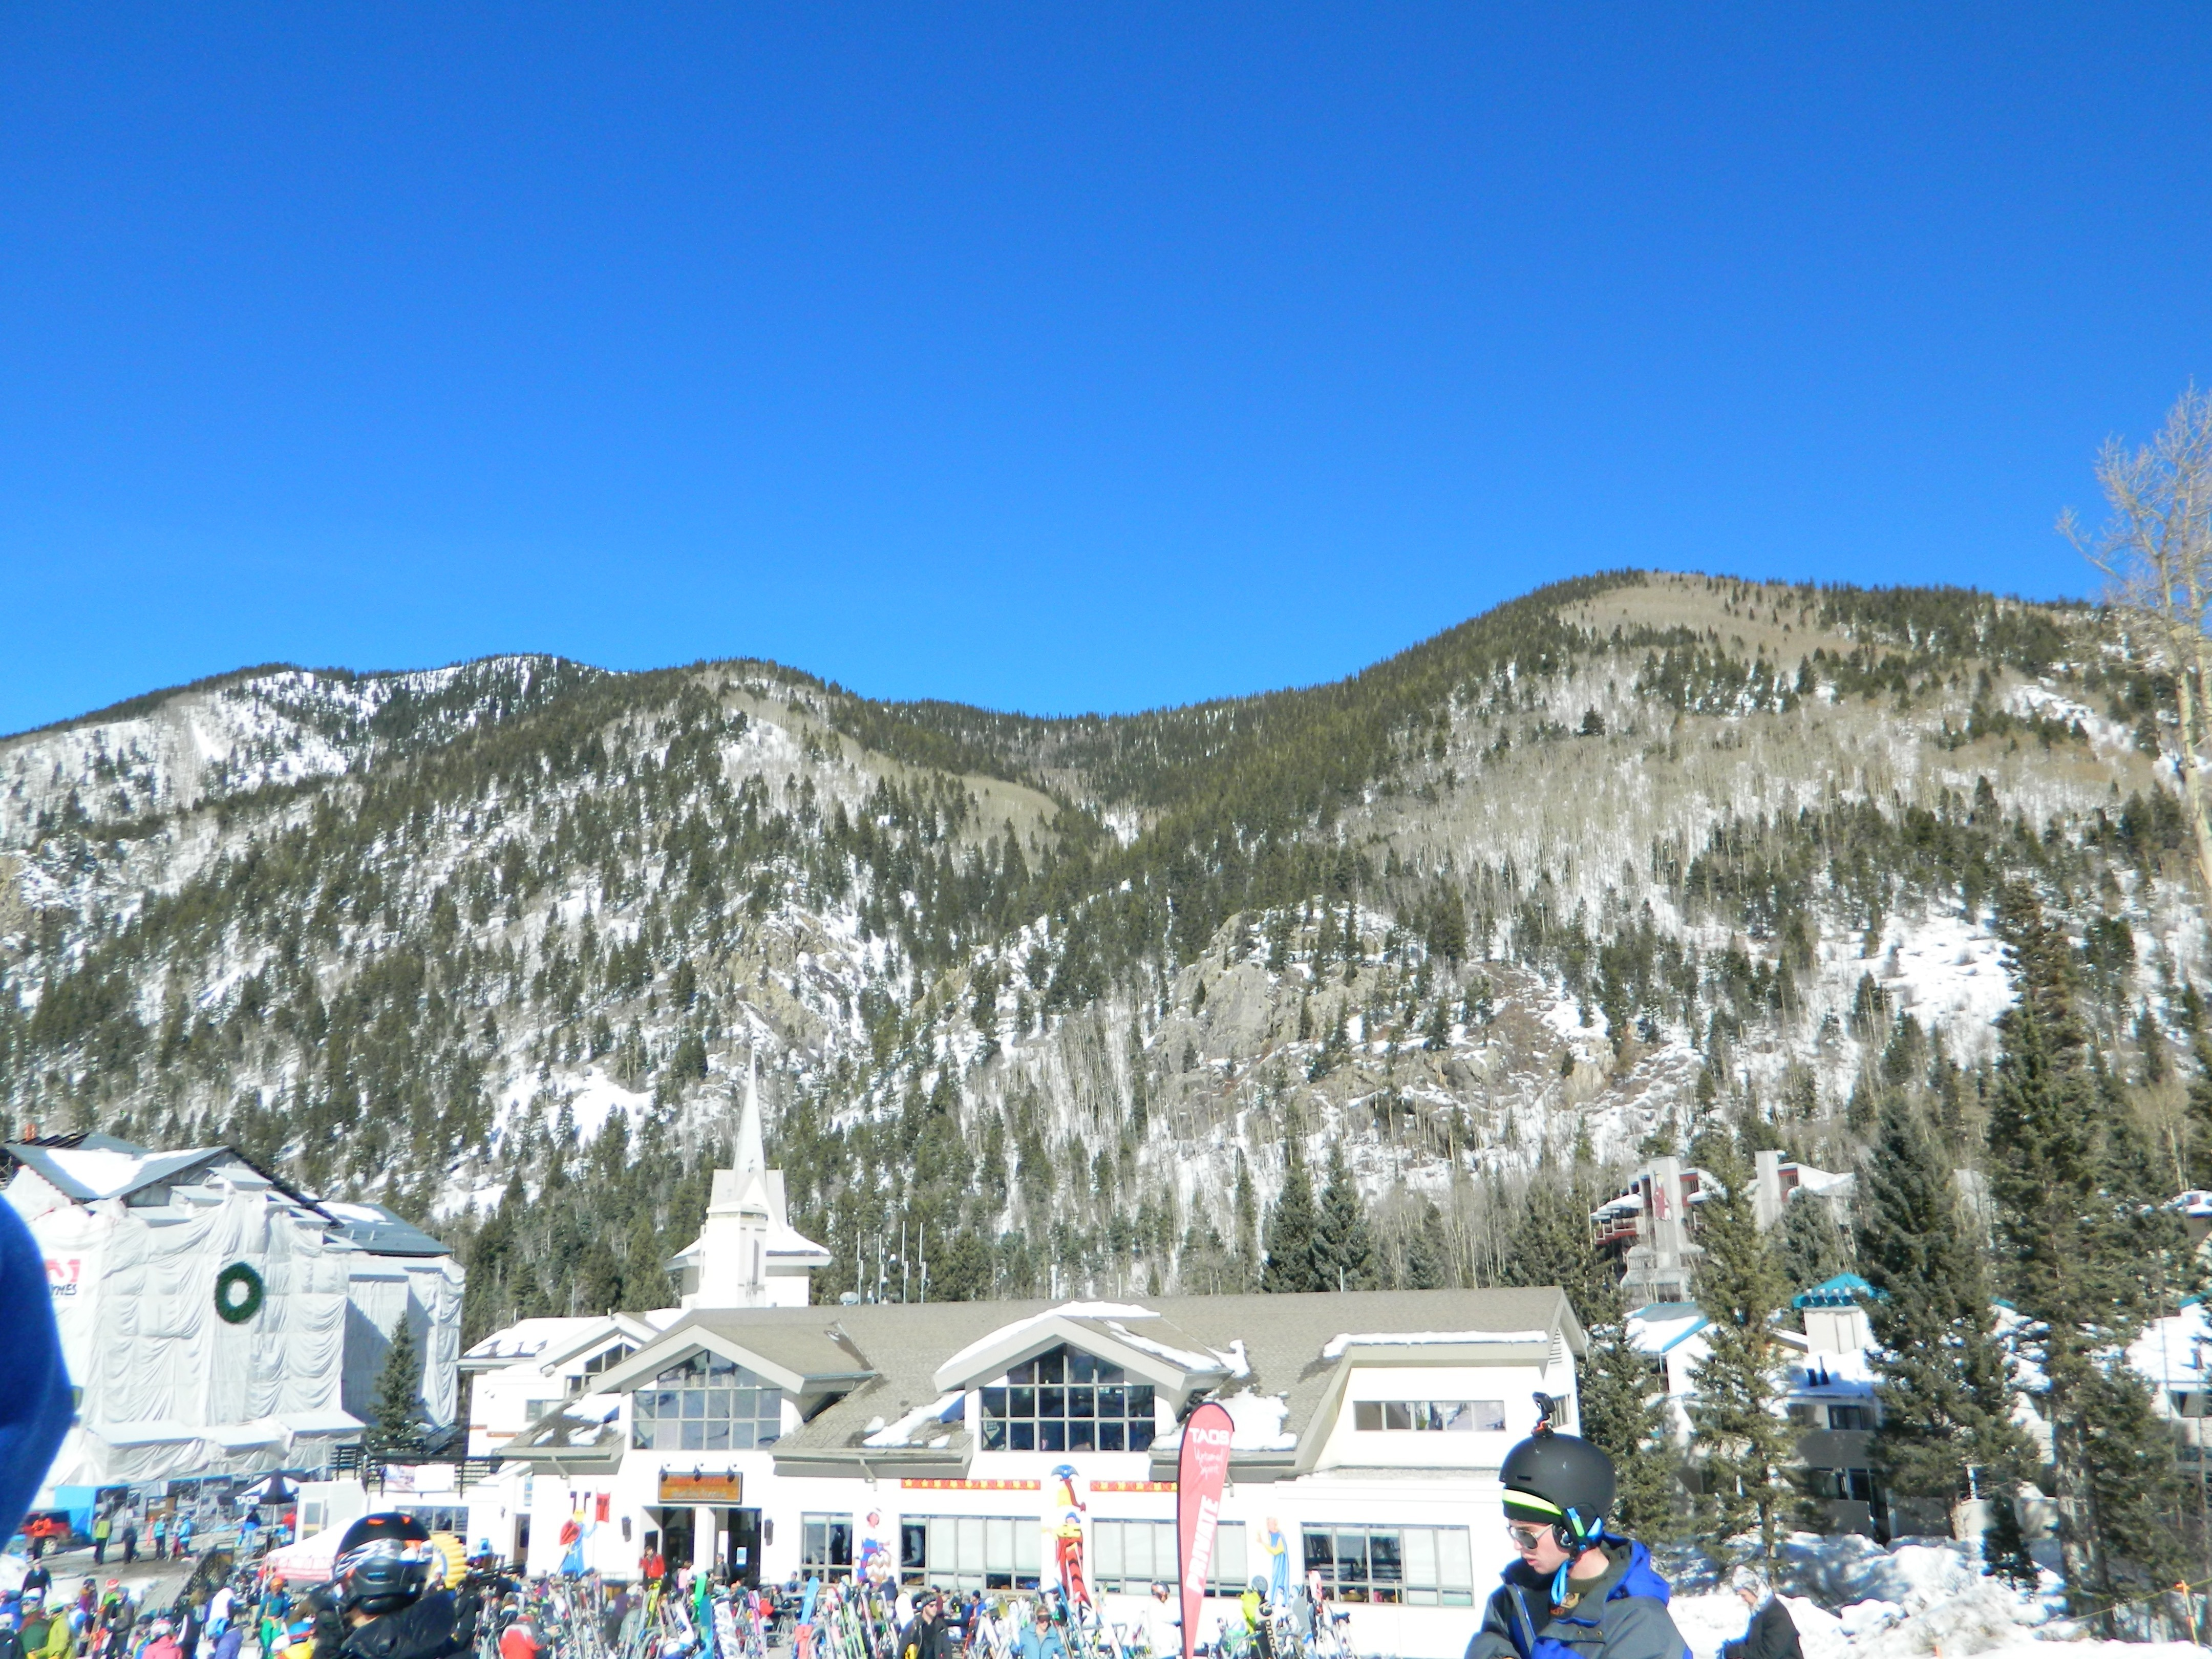 Bright blue sunny day at Taos Ski Valley village, seen from afar. Big crowd of skiers milling near Tenderfoot Katie's patio.